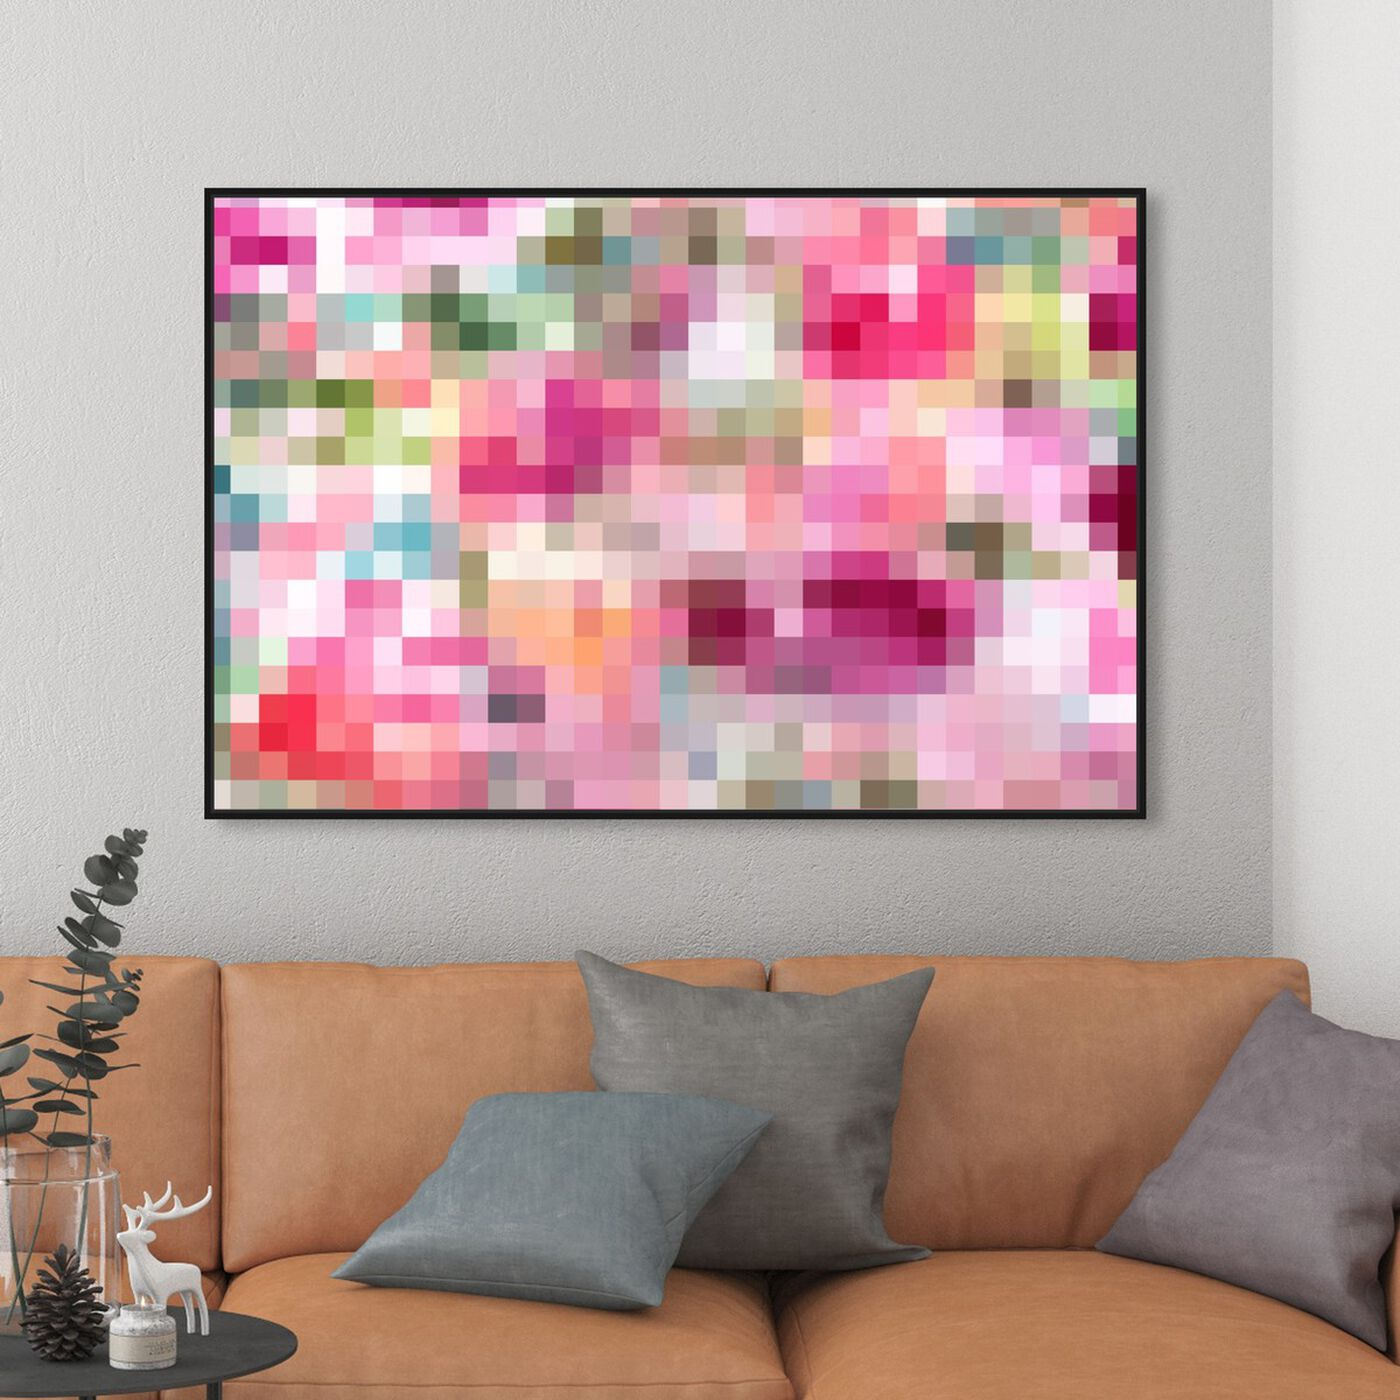 Hanging view of Pixel Garden featuring abstract and textures art.